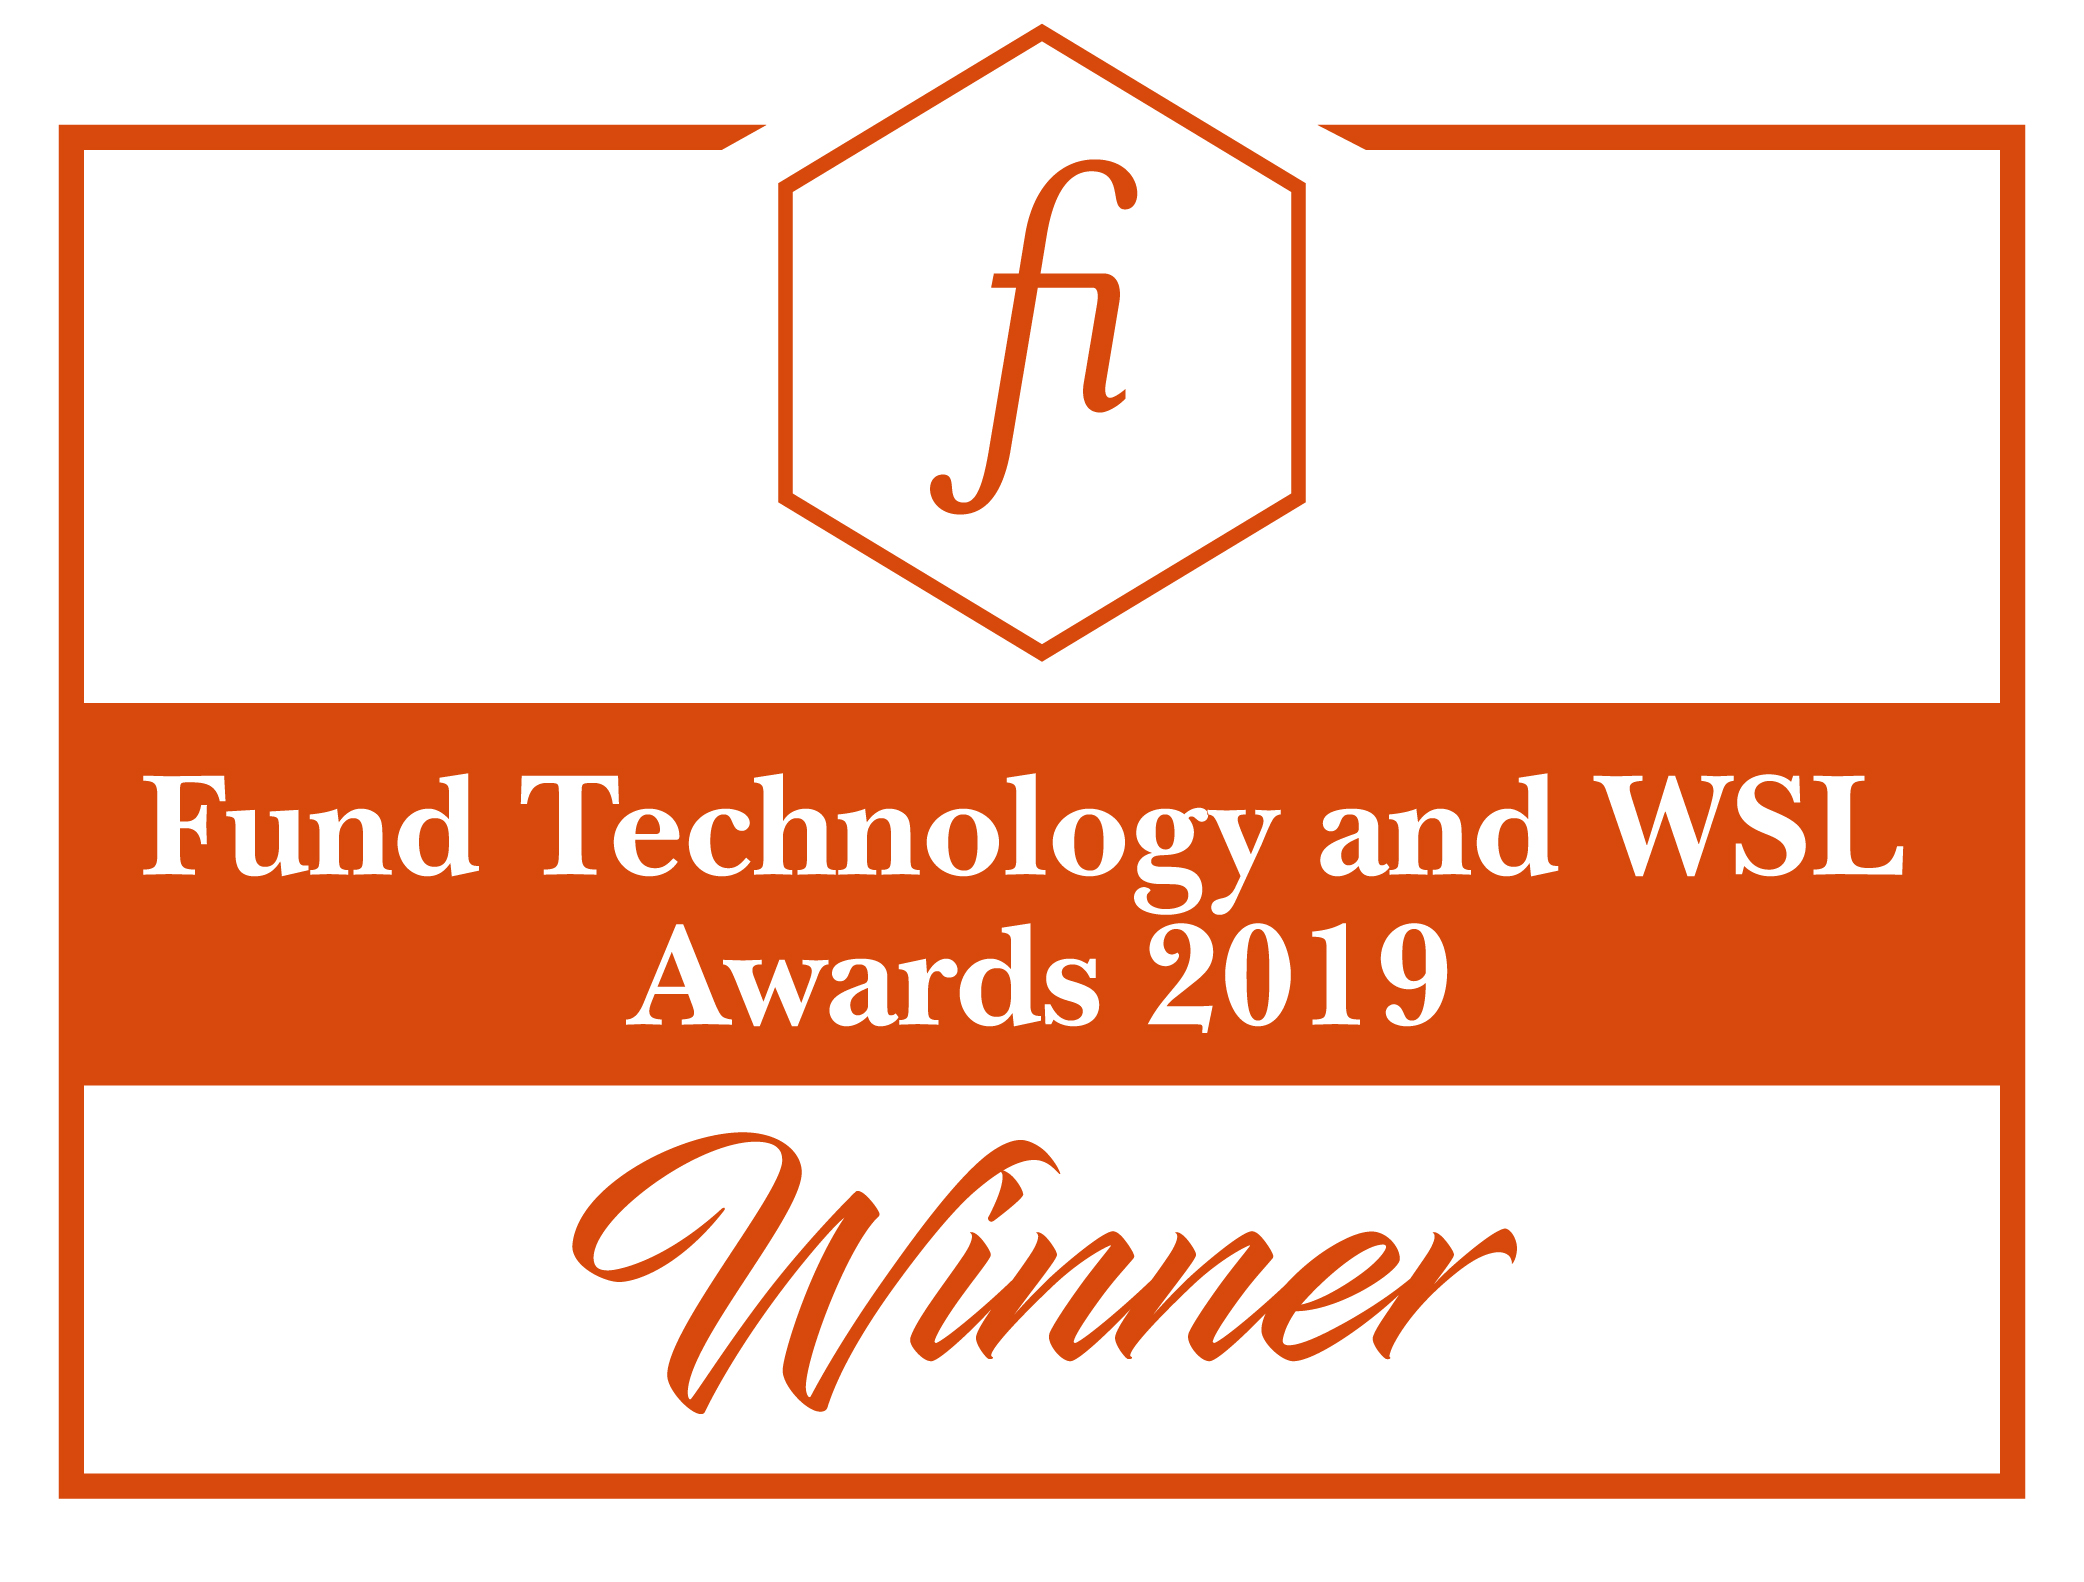 Fund Technology Awards